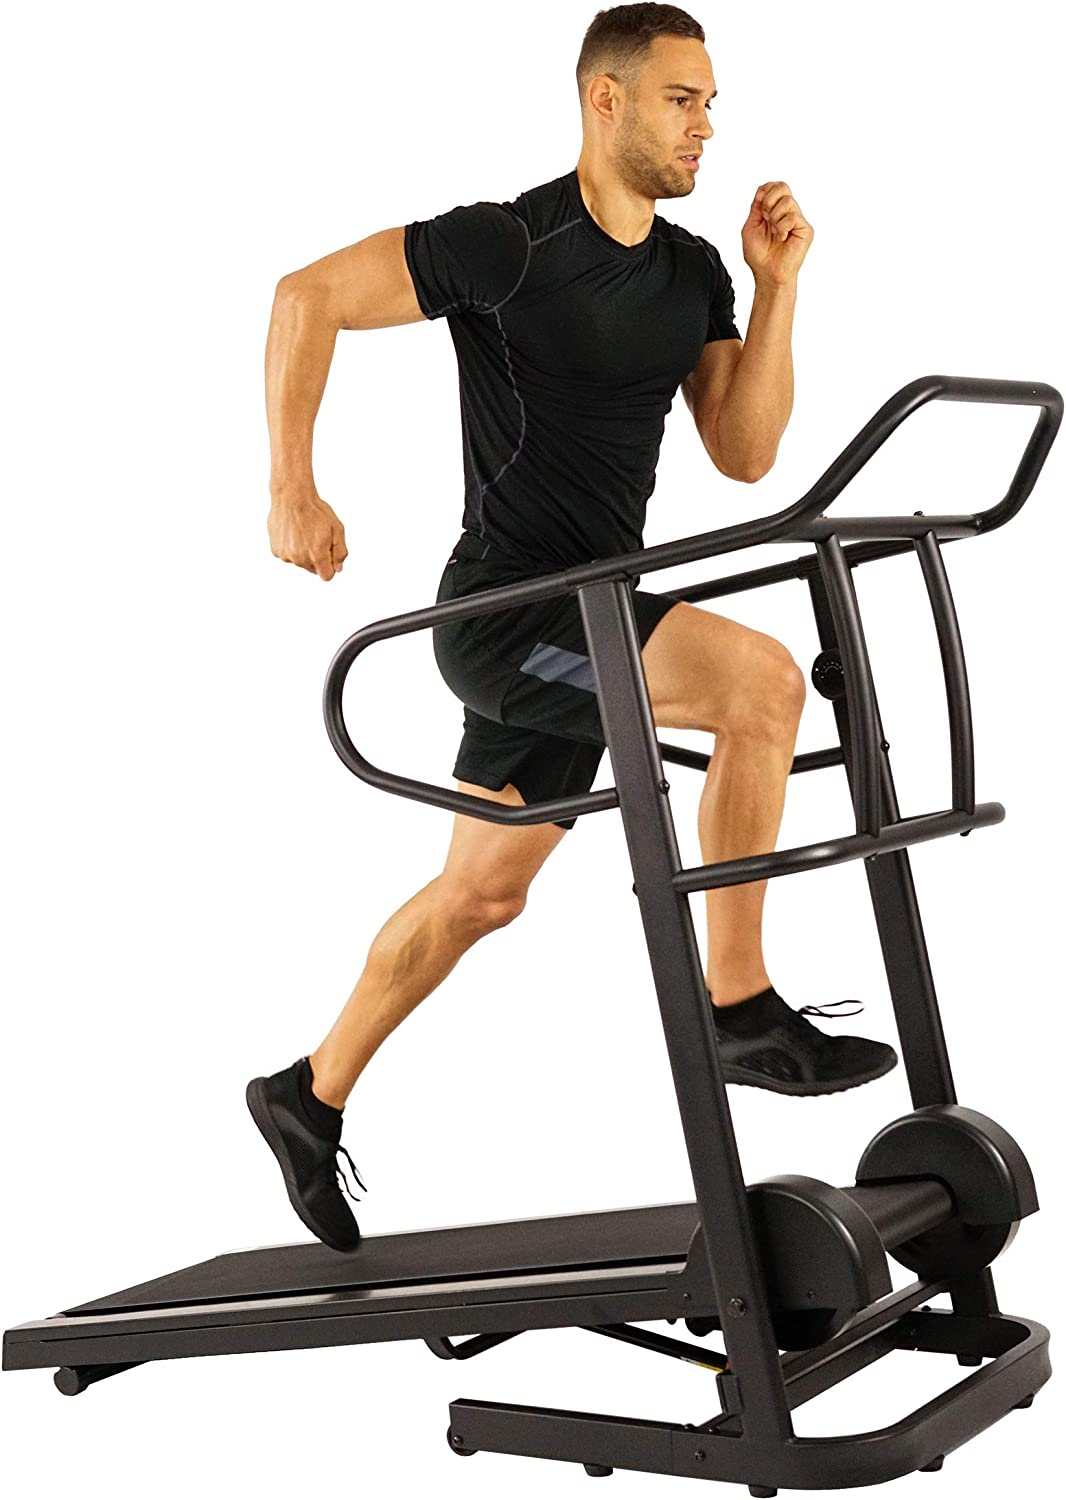 Sunny Health Fitness Manual Treadmill with 16 Levels of Magnetic Resistance, 300 LB Max Weight and Dual Flywheels